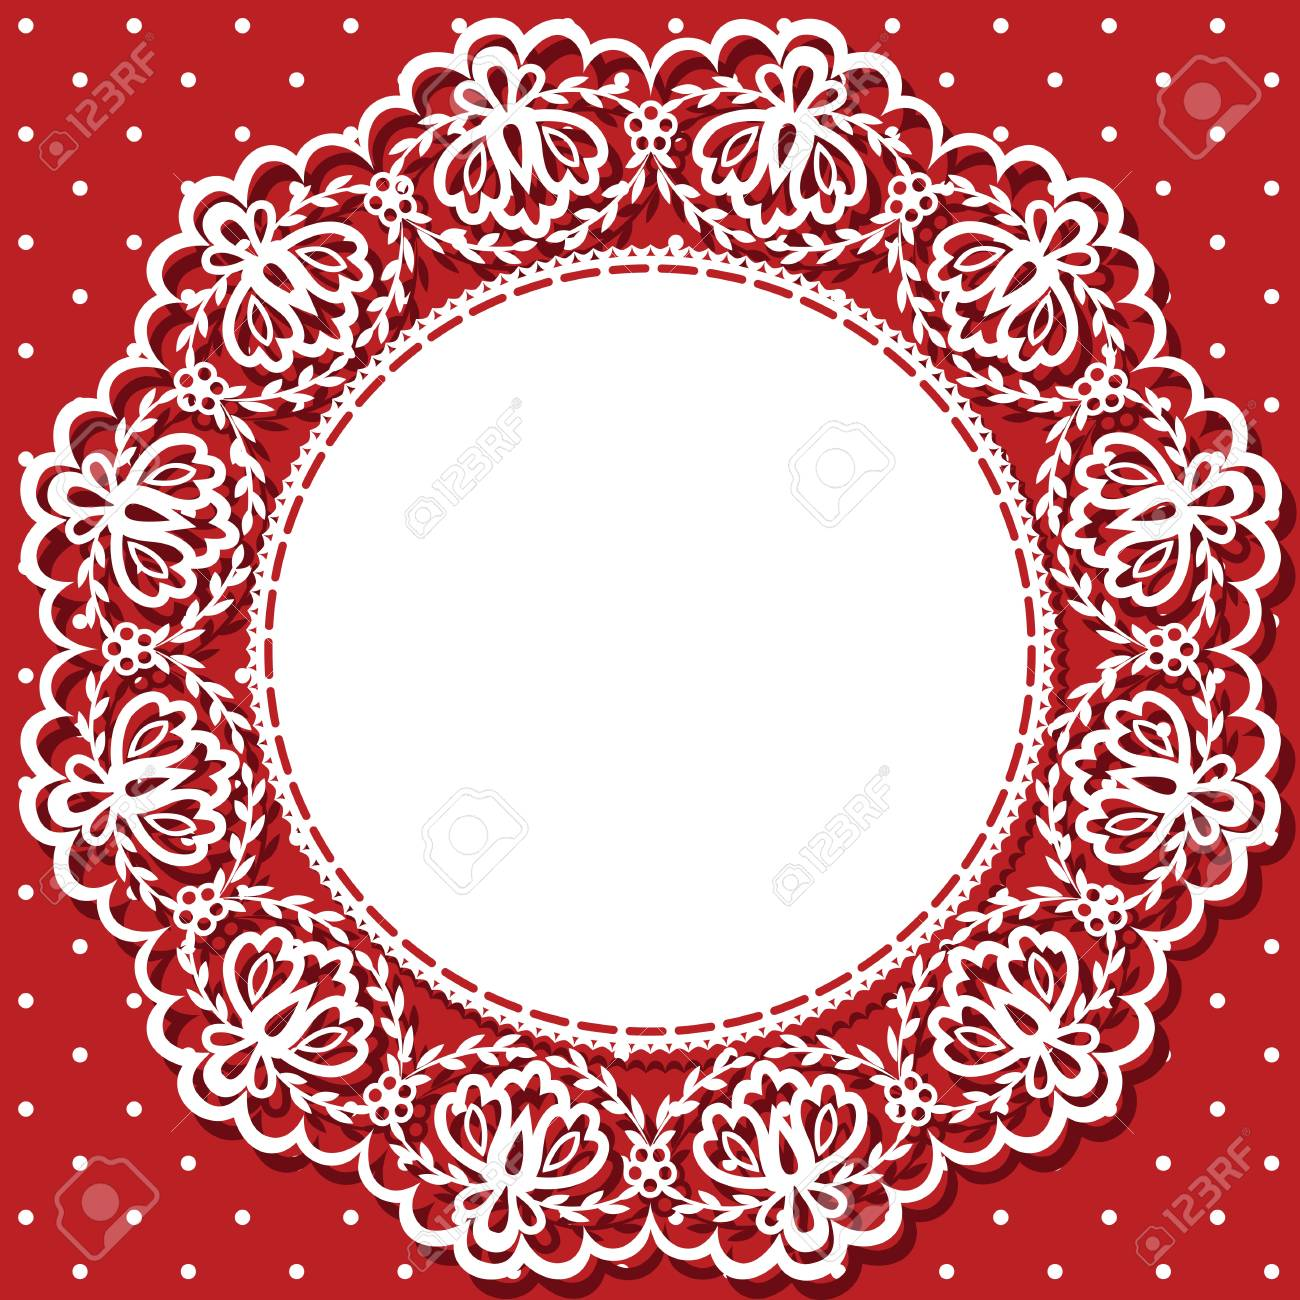 Wedding Invitation Or Greeting Card With Lace And Napkin Royalty ...